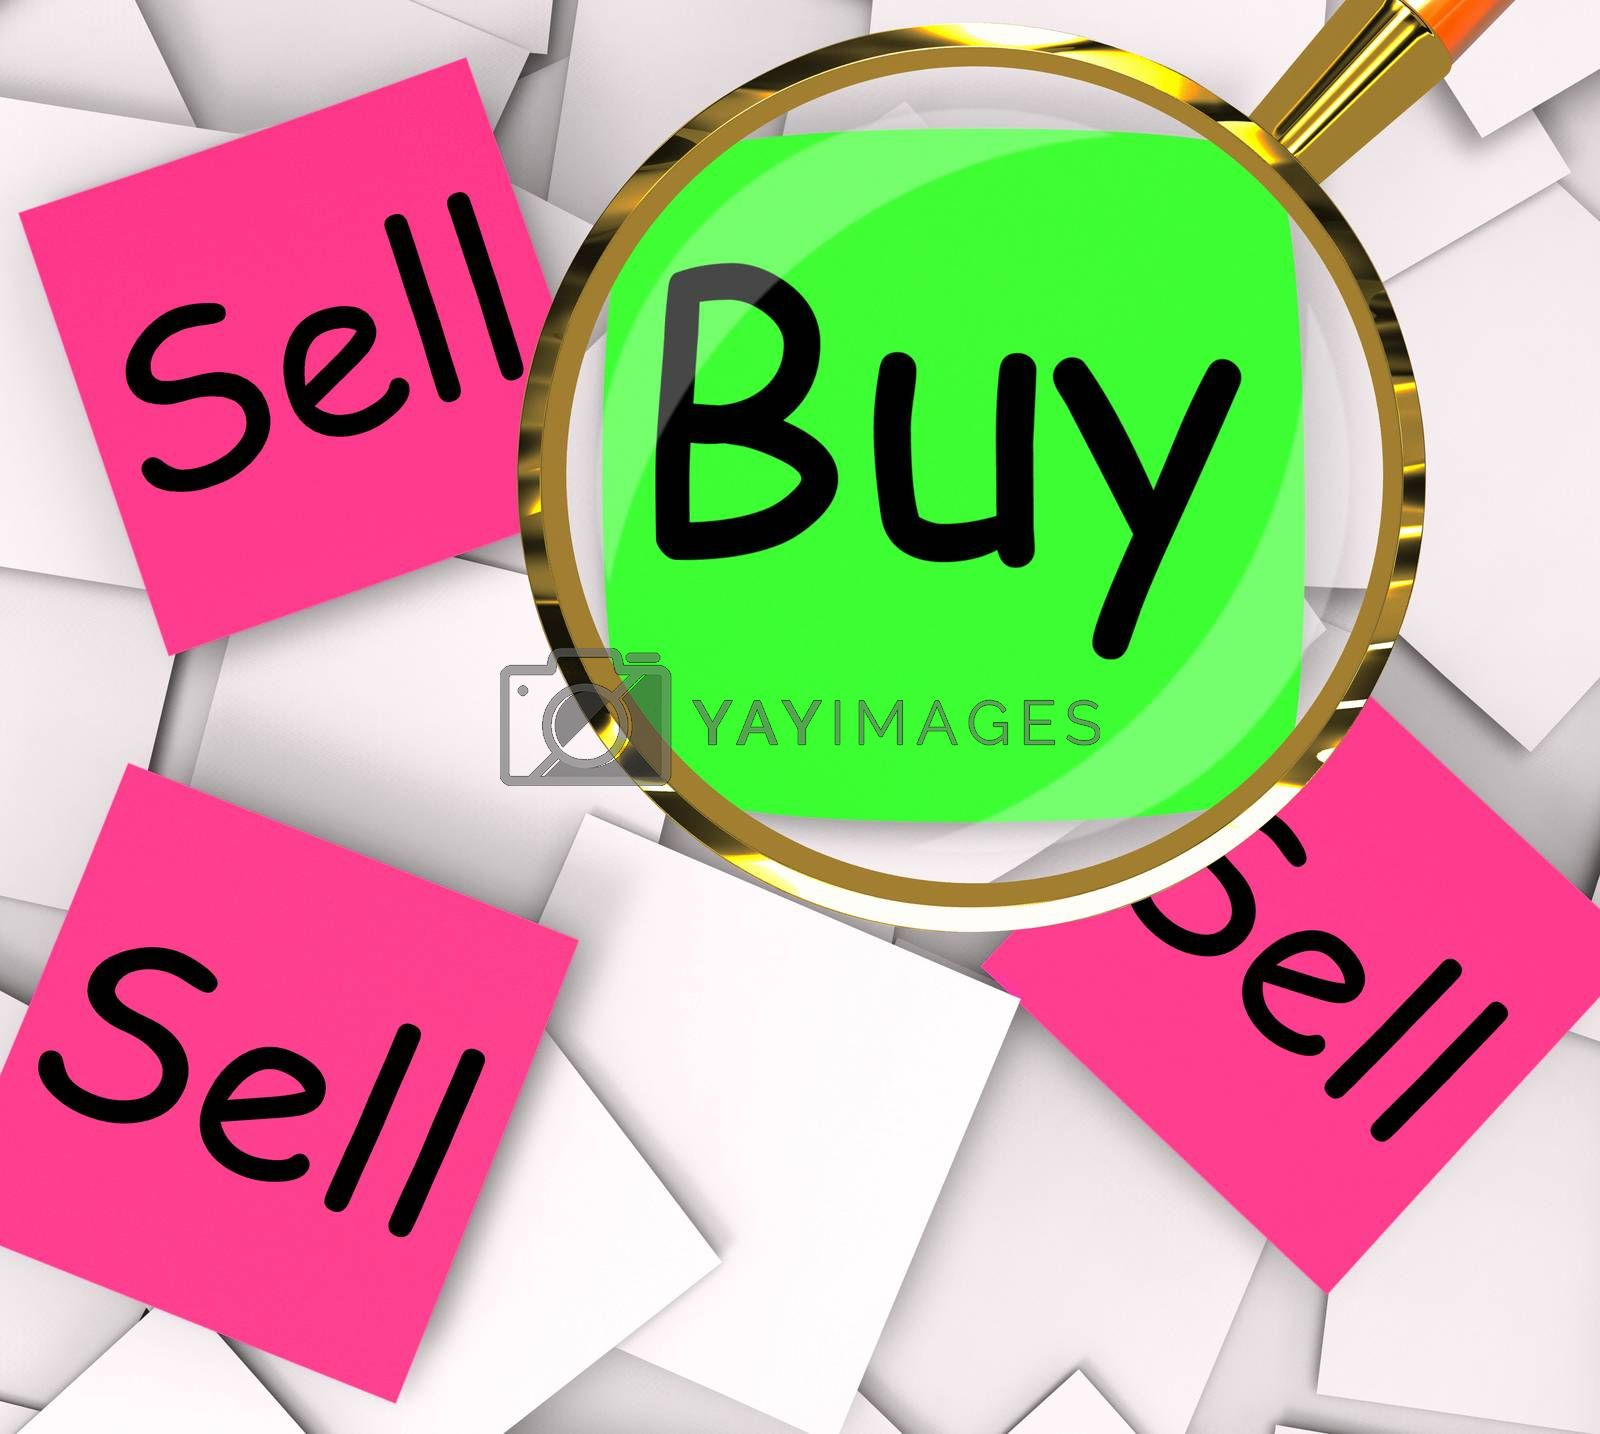 Buy Sell Post-It Papers Mean Buying And Selling by stuartmiles